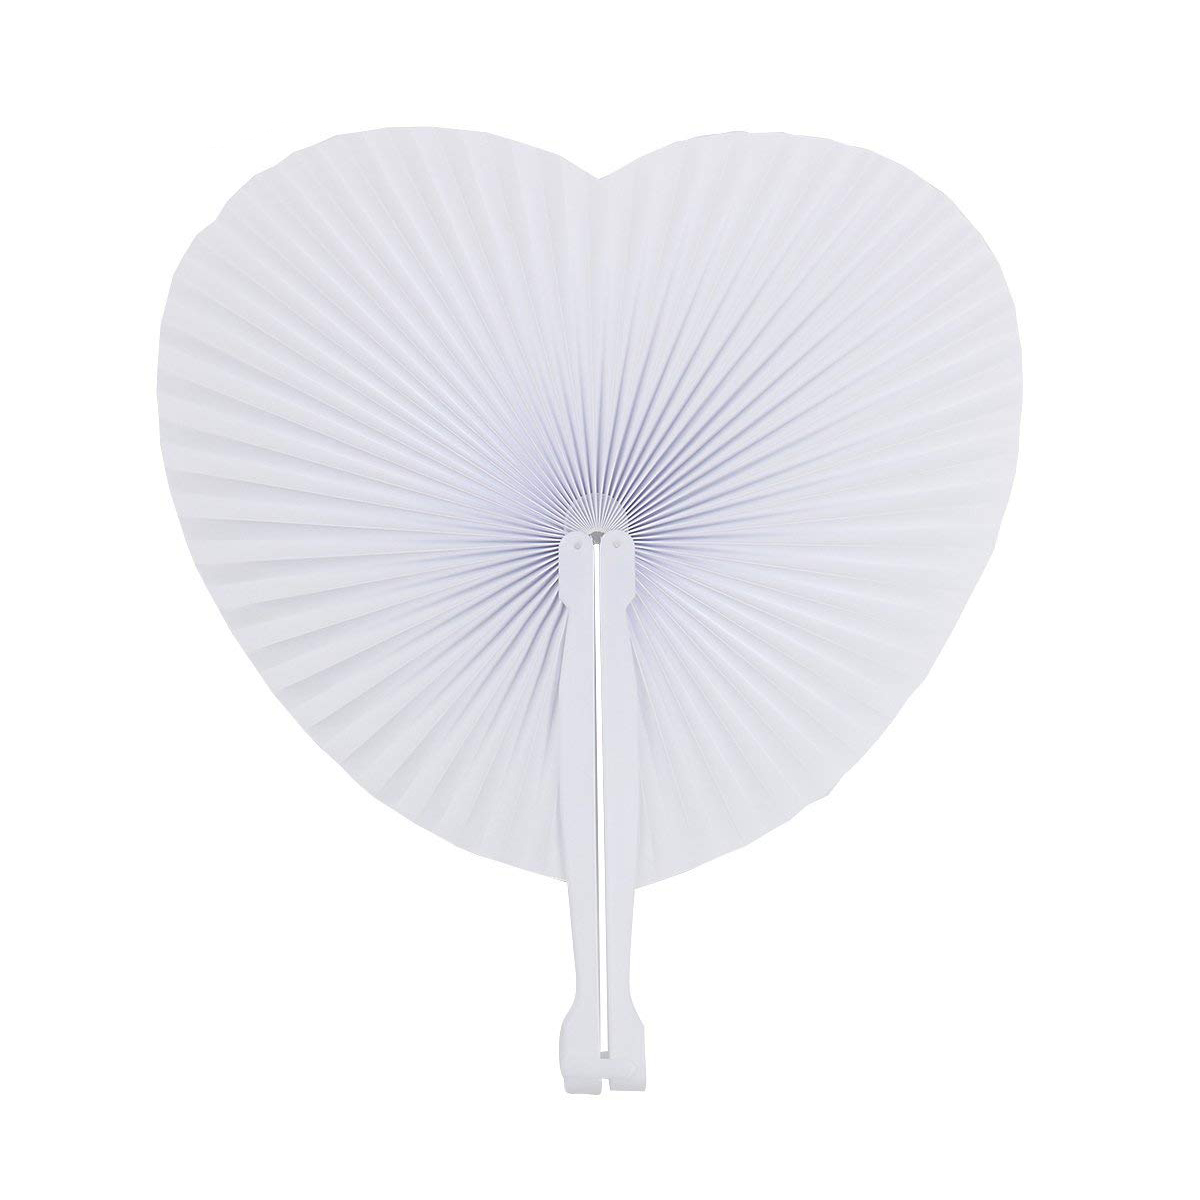 48 pcs Fan White Paper Deco Decoration Wedding Party Gift for the Guests Anniversary Wedding Bapteme DIY Party (Heart)48 pcs Fan White Paper Deco Decoration Wedding Party Gift for the Guests Anniversary Wedding Bapteme DIY Party (Heart)